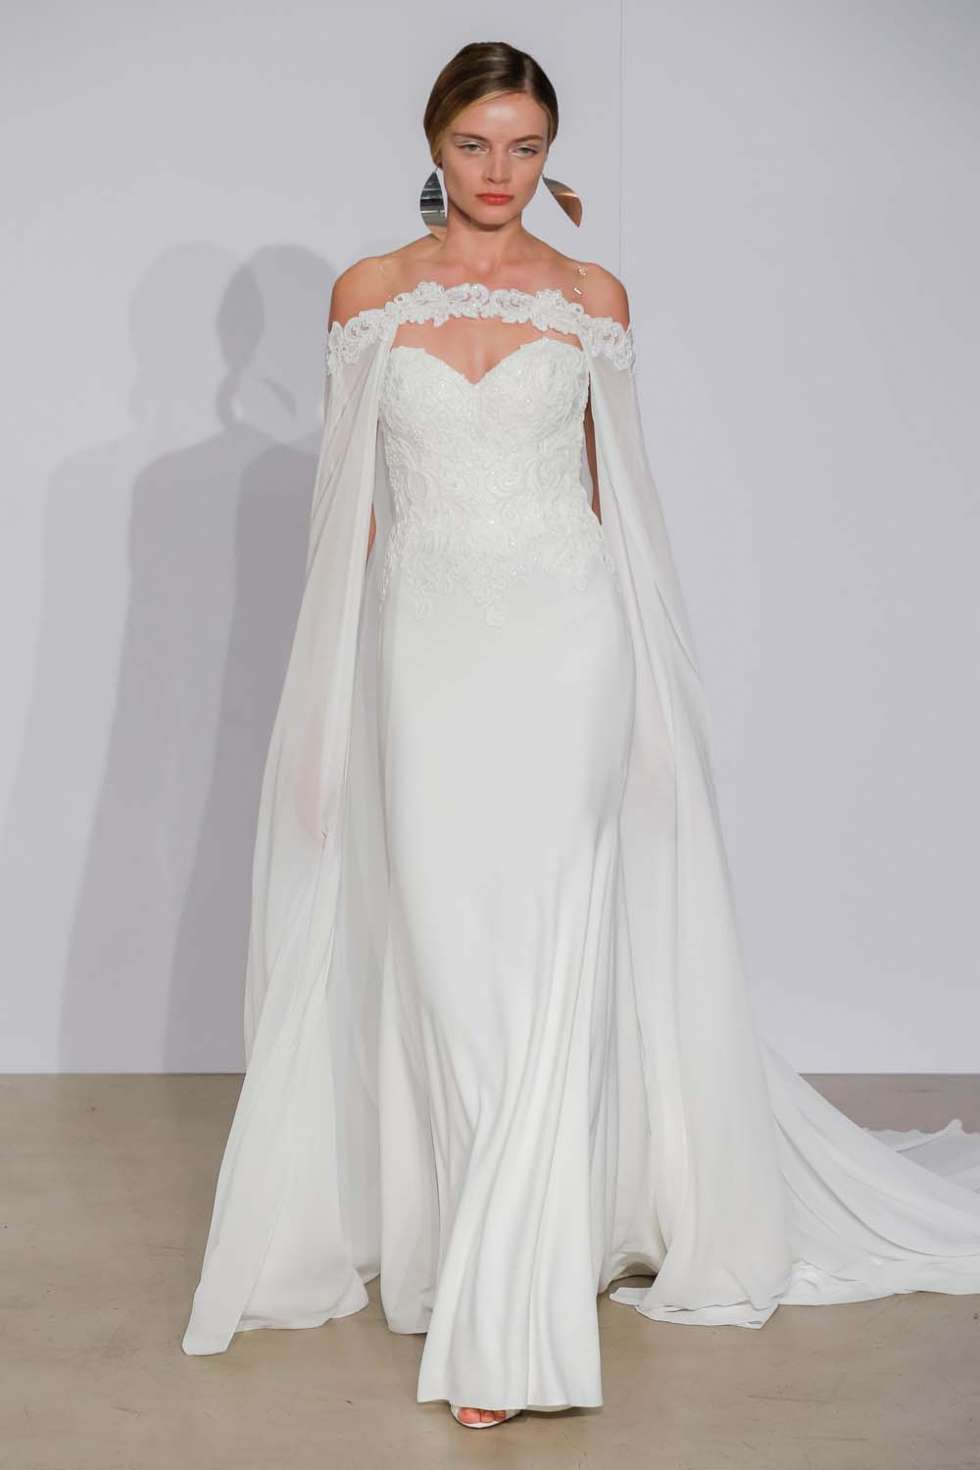 The 2018 Fall/Winter Wedding Dress Collection by Justin ...